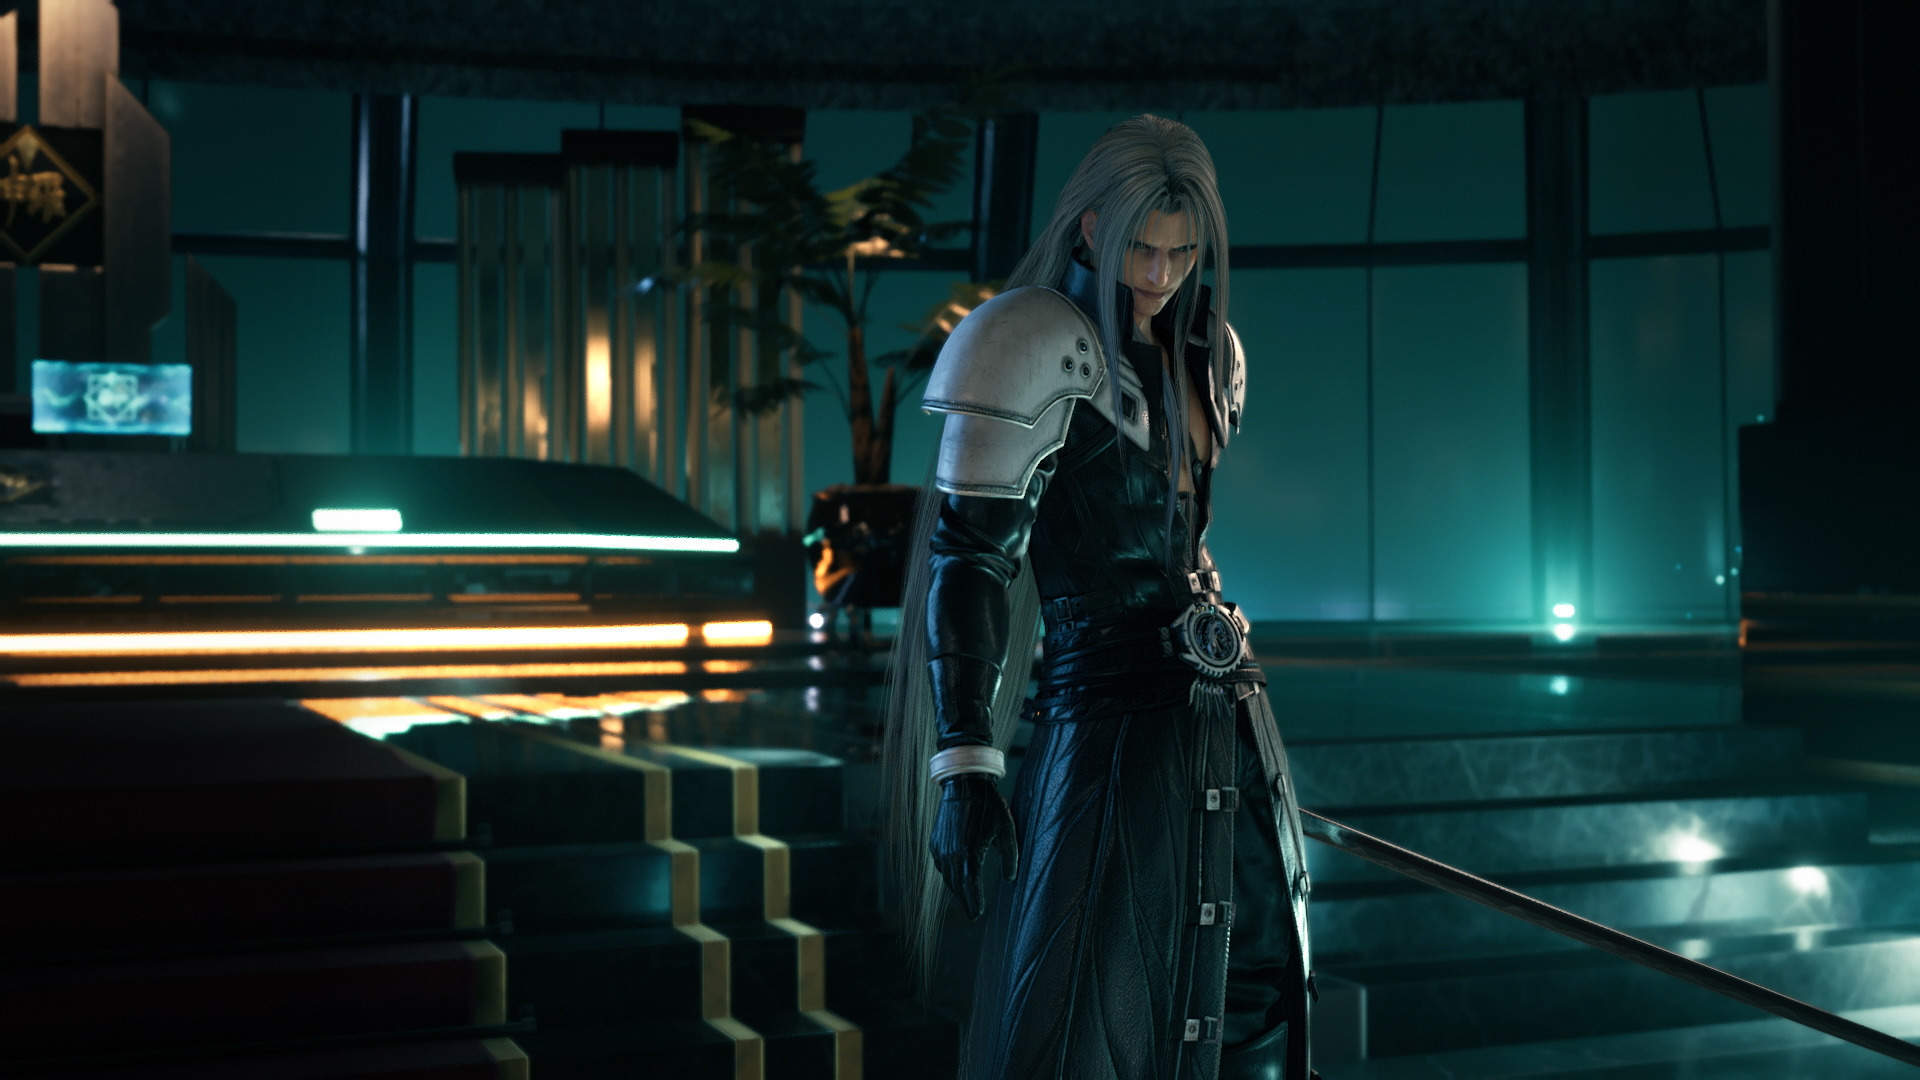 An image of Sephiroth from FFVII Remake